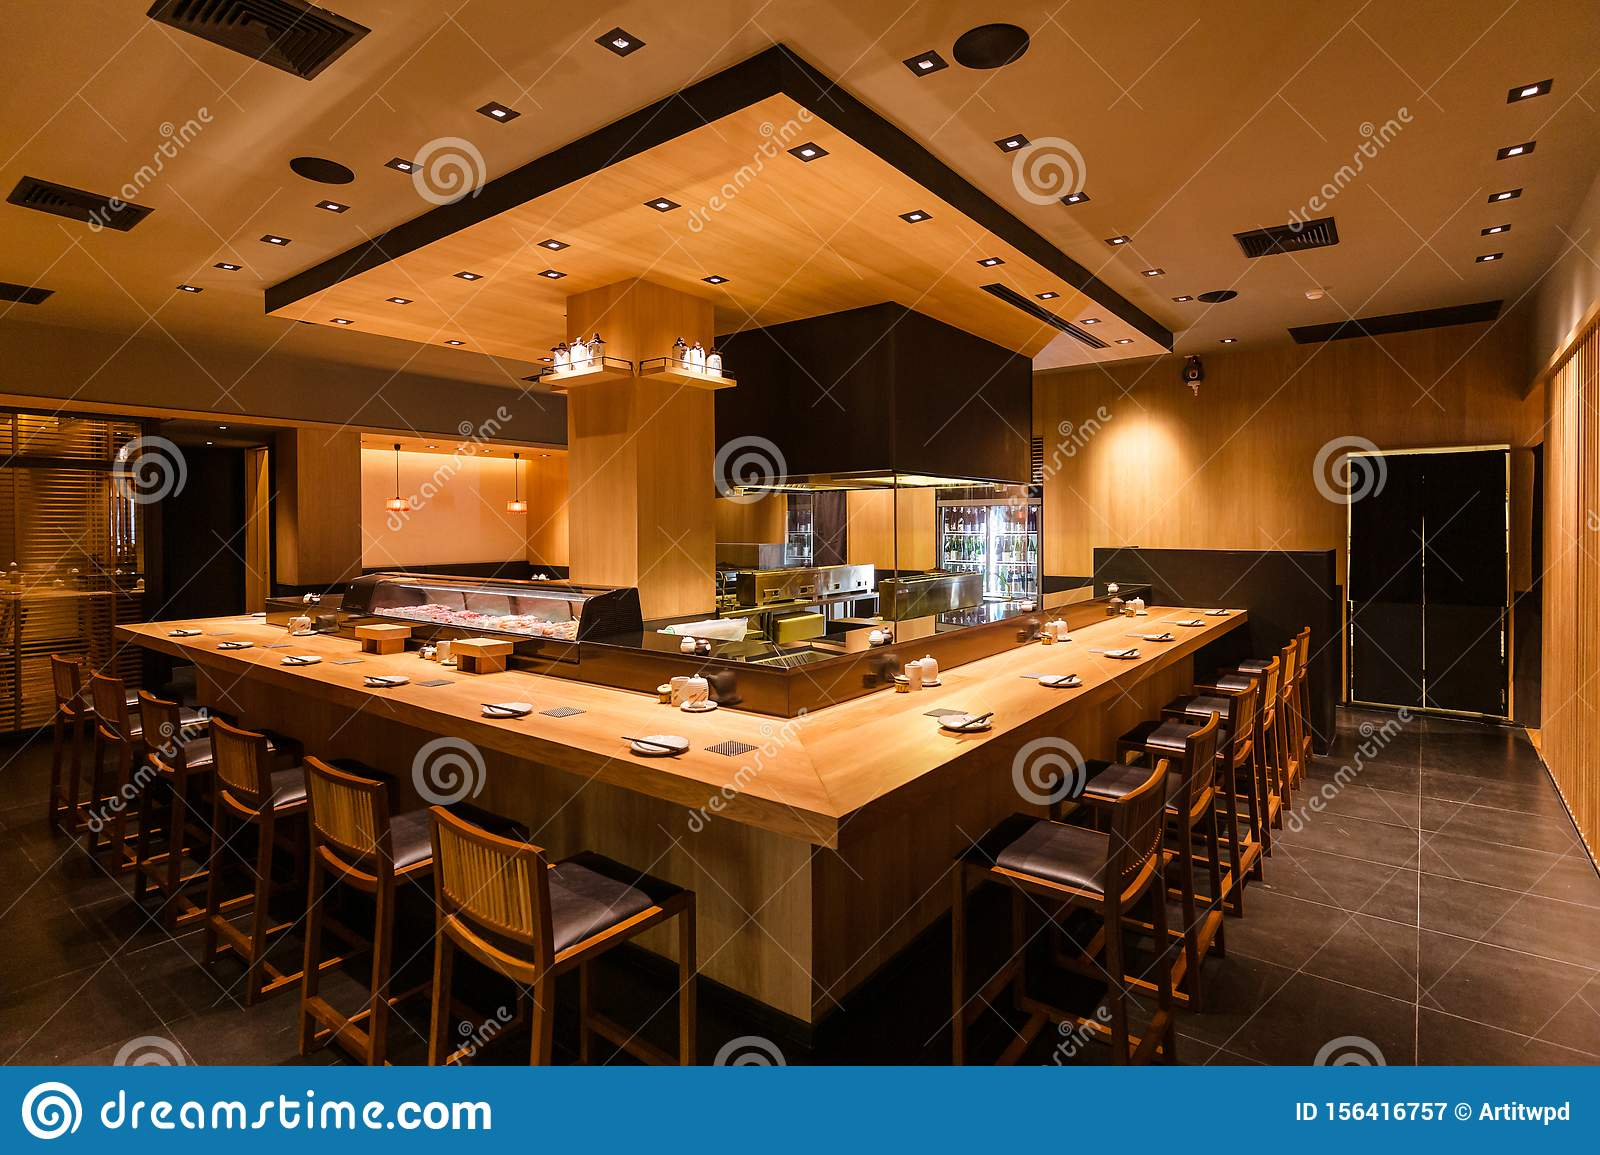 2 414 Counter Japanese Photos Free Royalty Free Stock Photos From Dreamstime